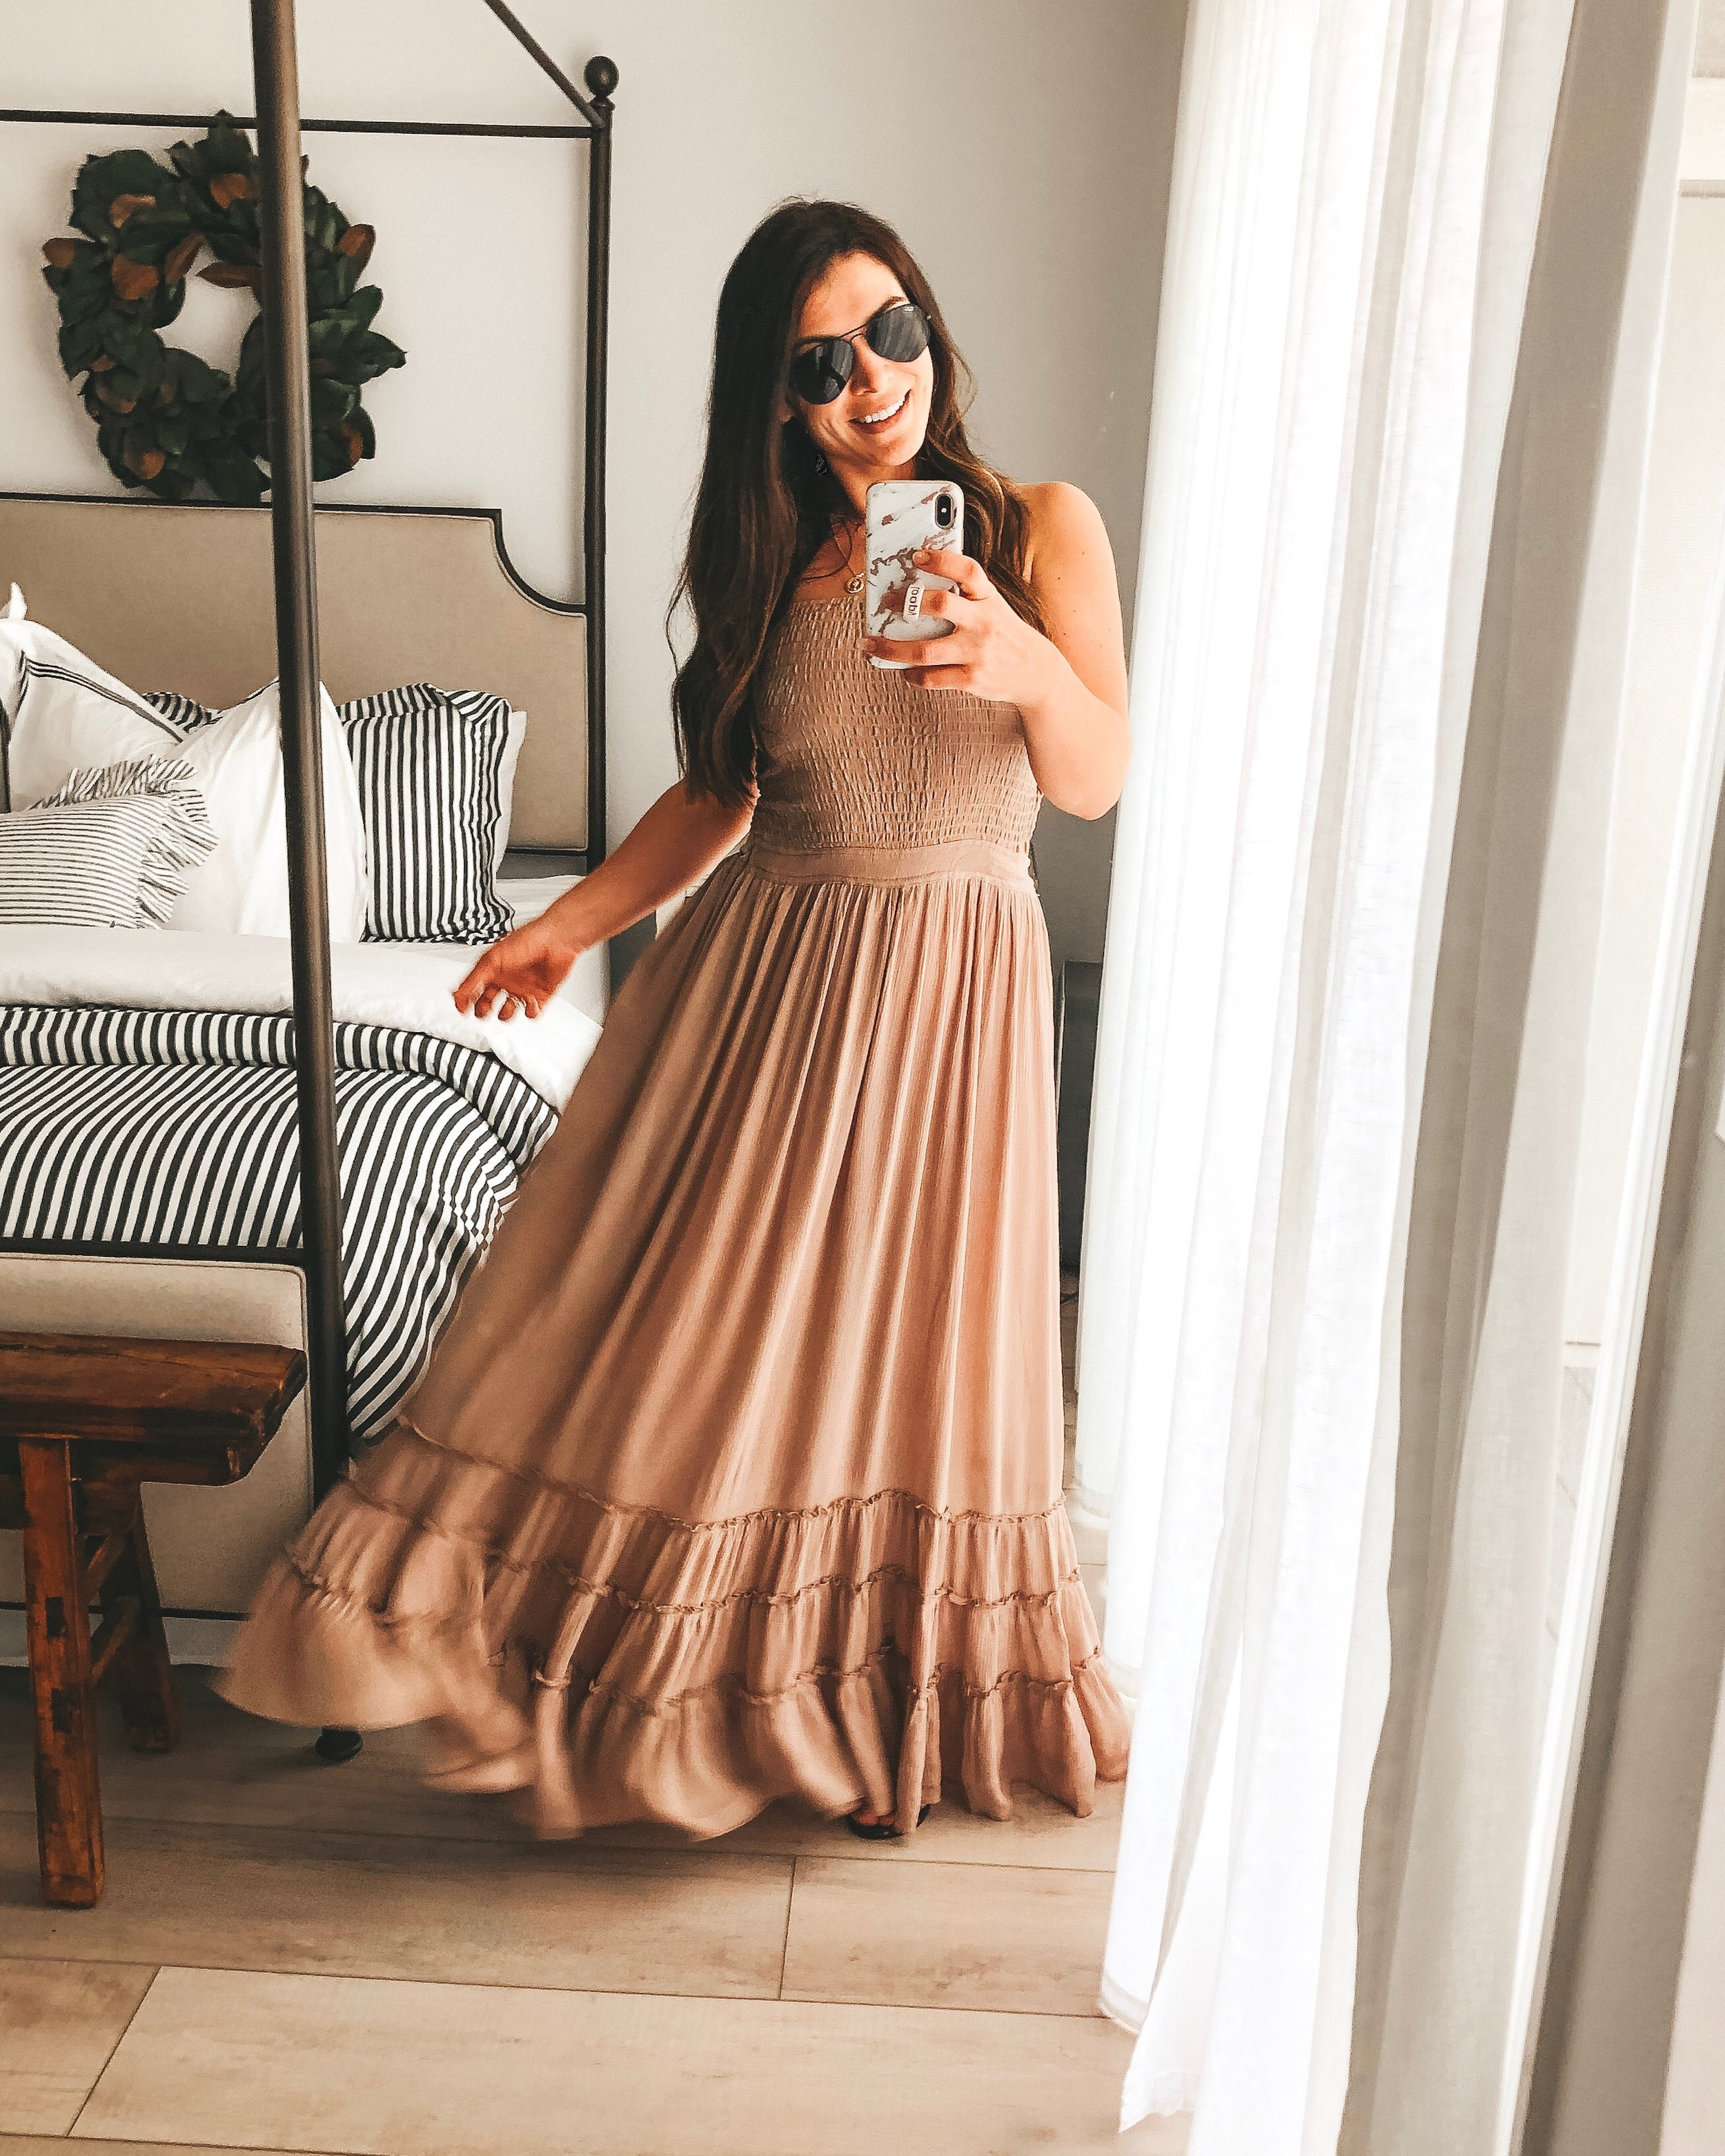 Amazon fashion finds for summer.  10 under $35 amazon women's clothing pieces.  Mauve Free People inspired maxi dress with backless detail.